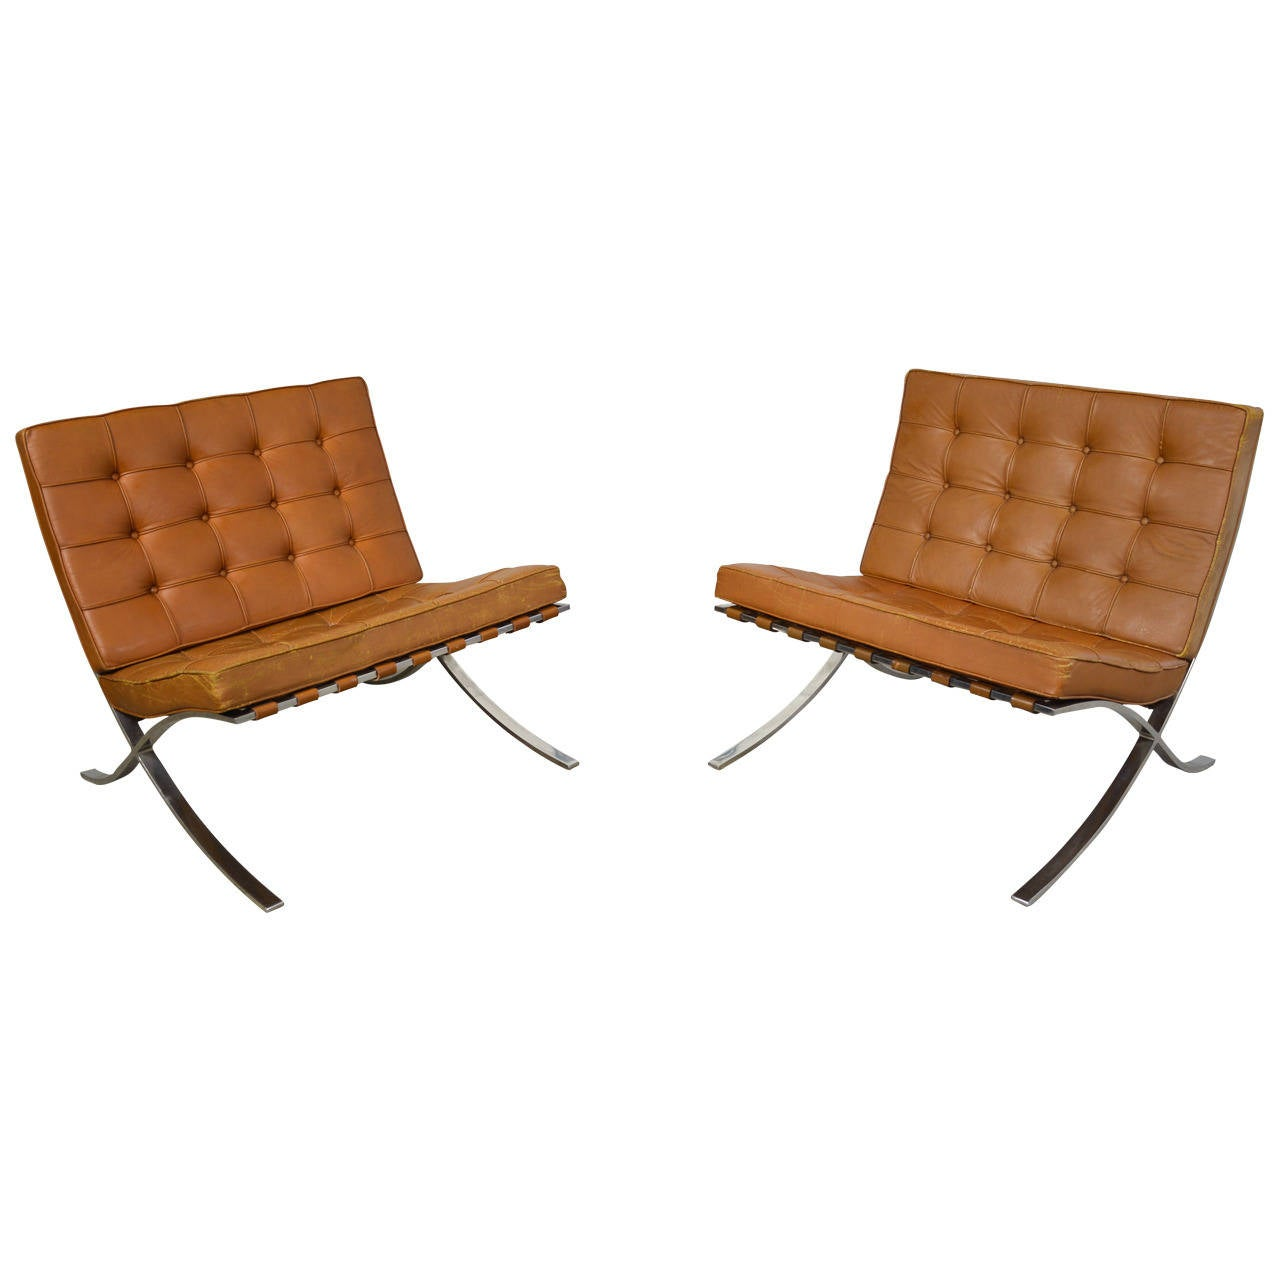 pair of ludwig mies van der rohe barcelona chairs at 1stdibs. Black Bedroom Furniture Sets. Home Design Ideas